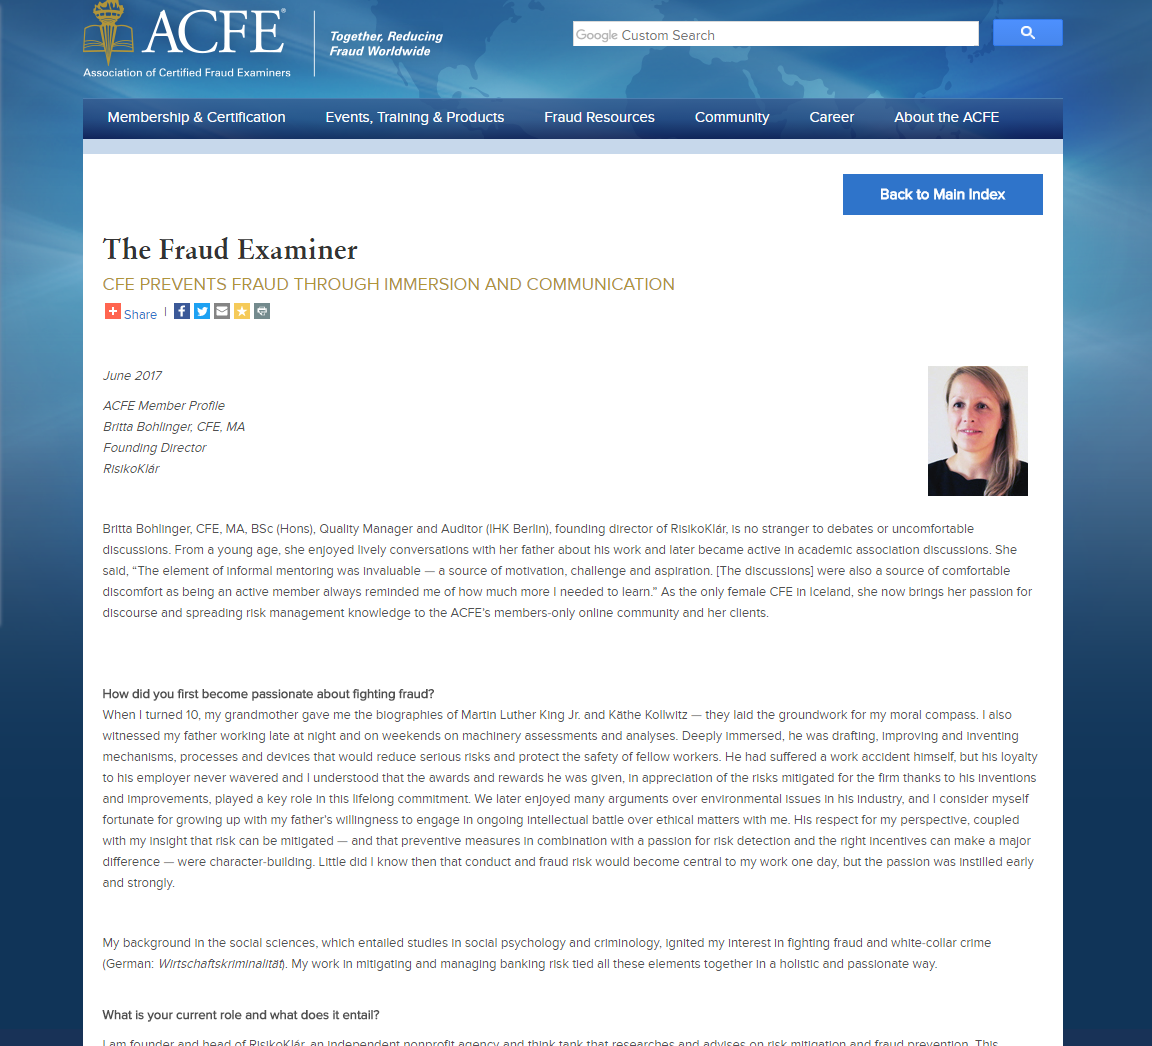 My interview with the ACFE